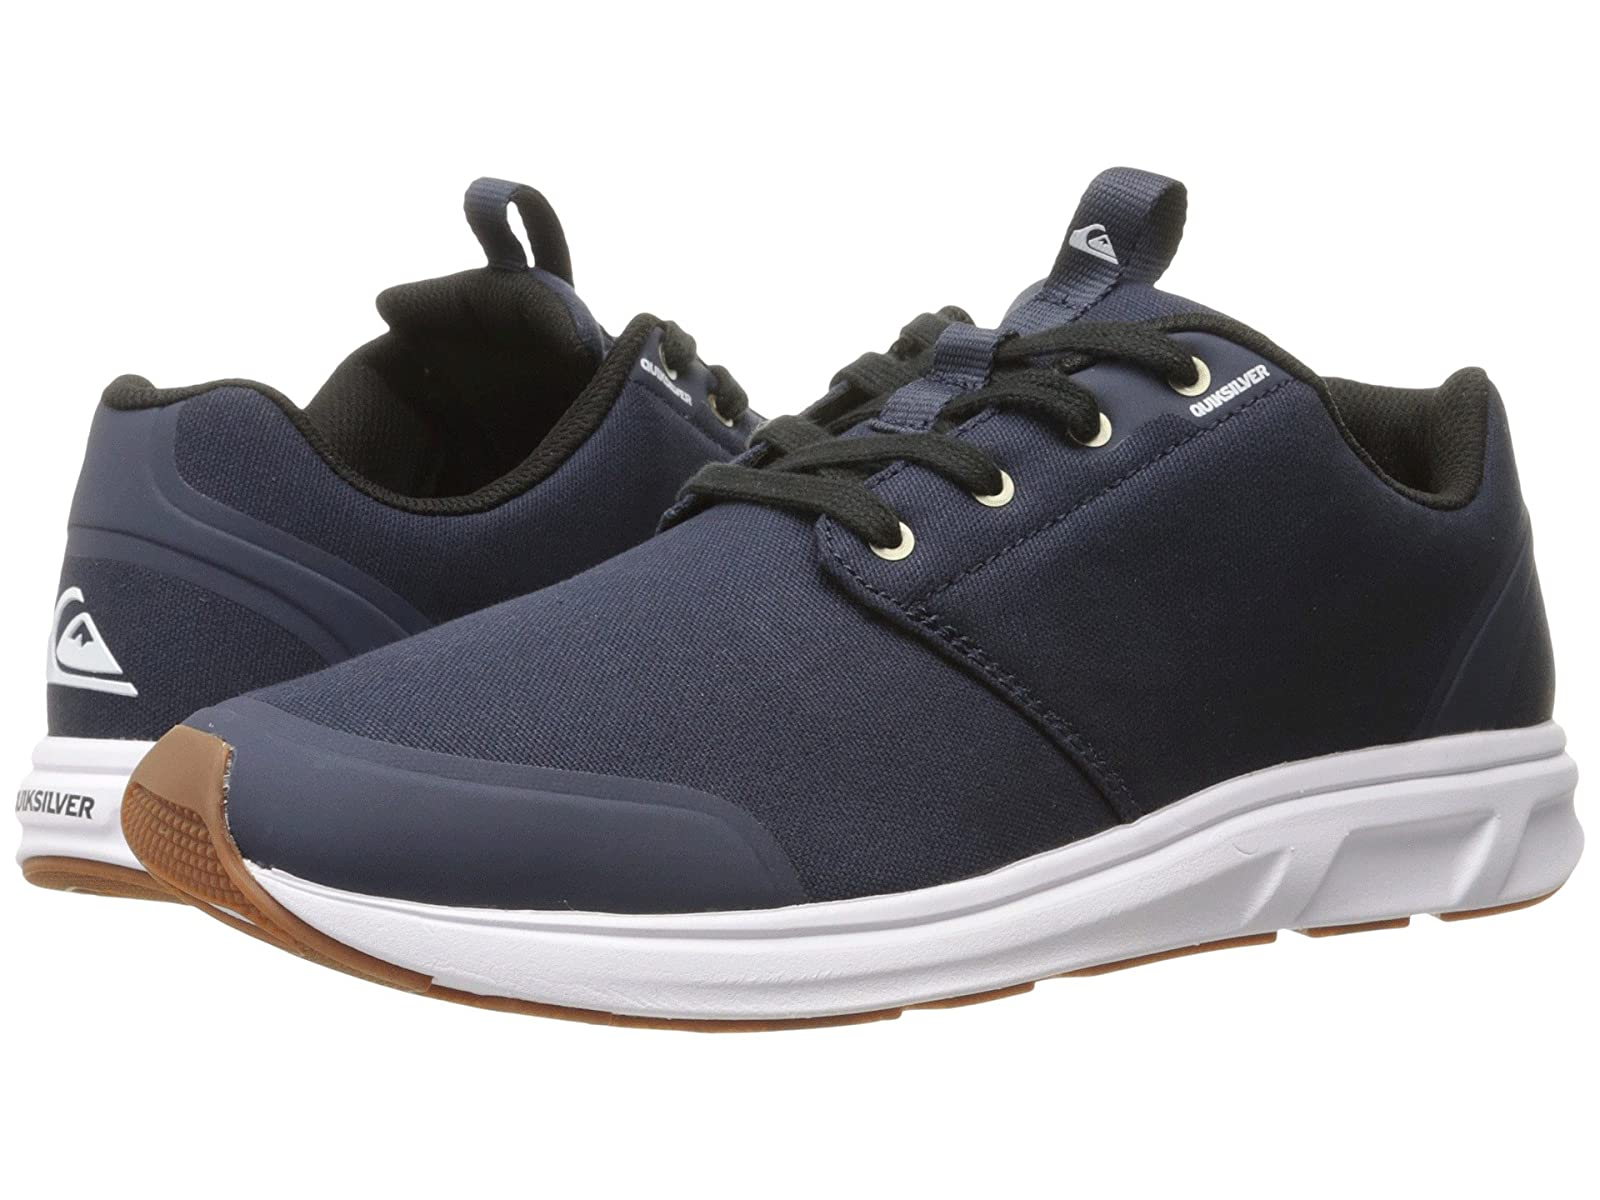 Quiksilver Voyage TextileCheap and distinctive eye-catching shoes